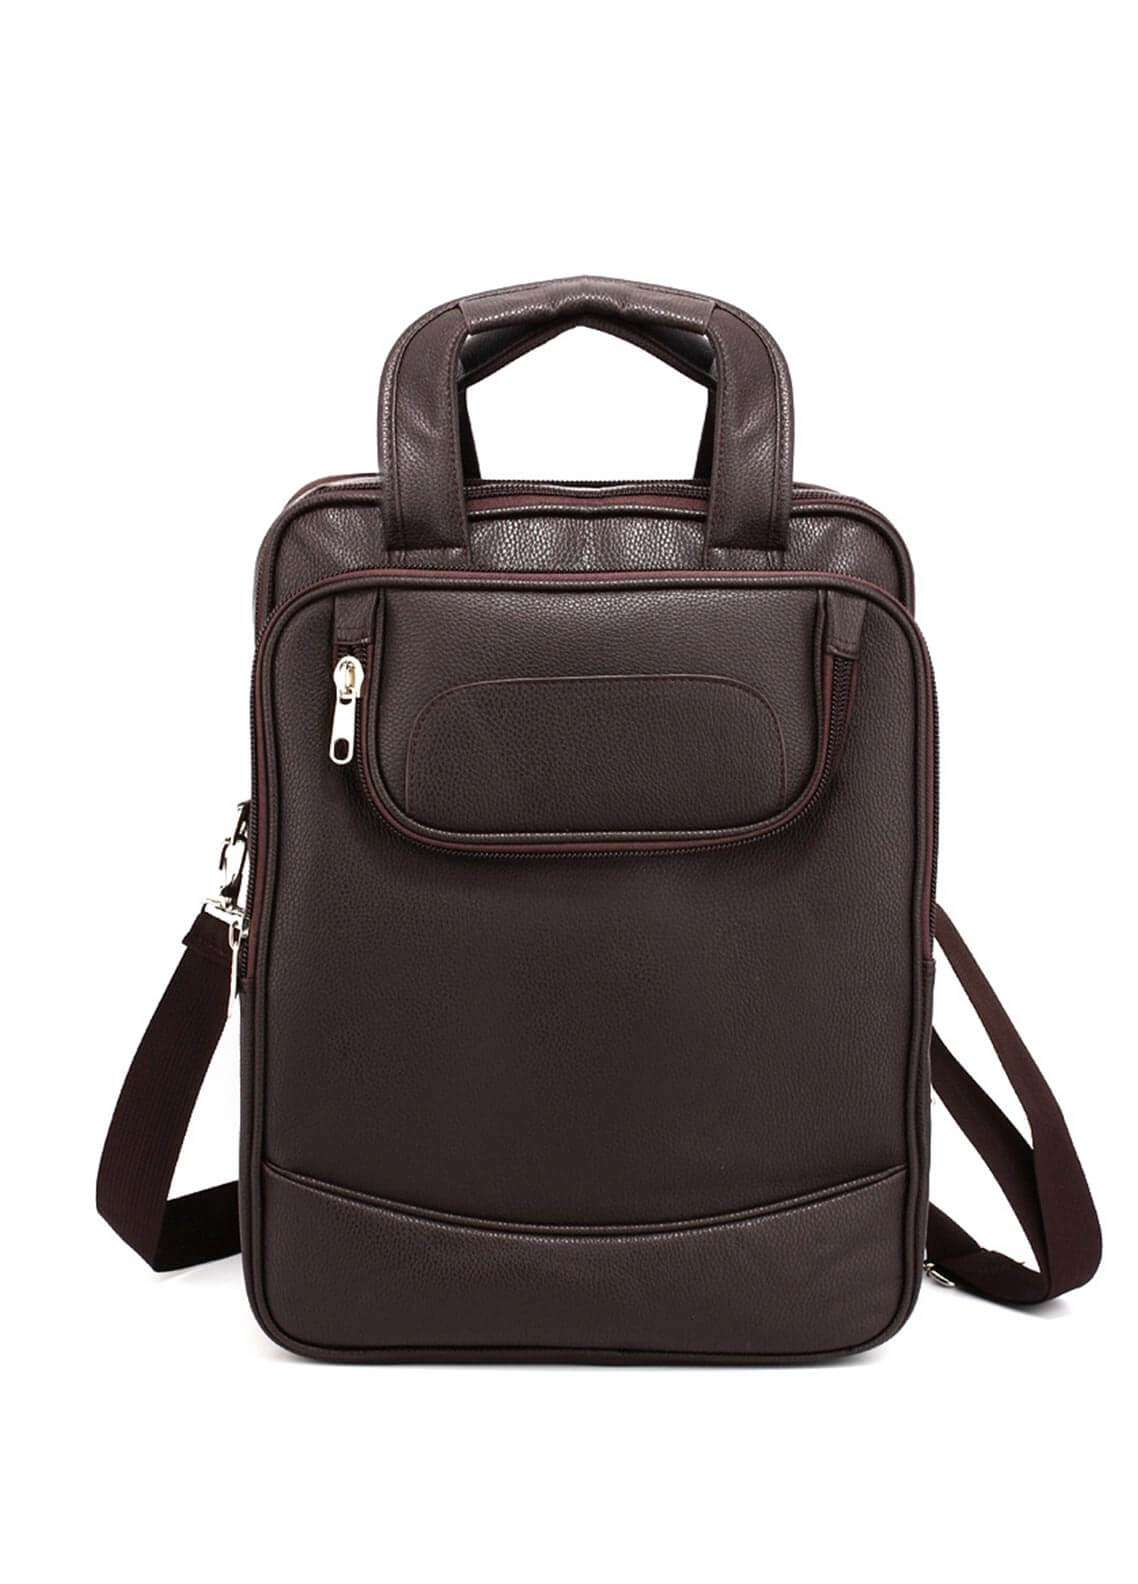 Anna Grace London Faux Leather BackPack Bags for Unisex - Coffee